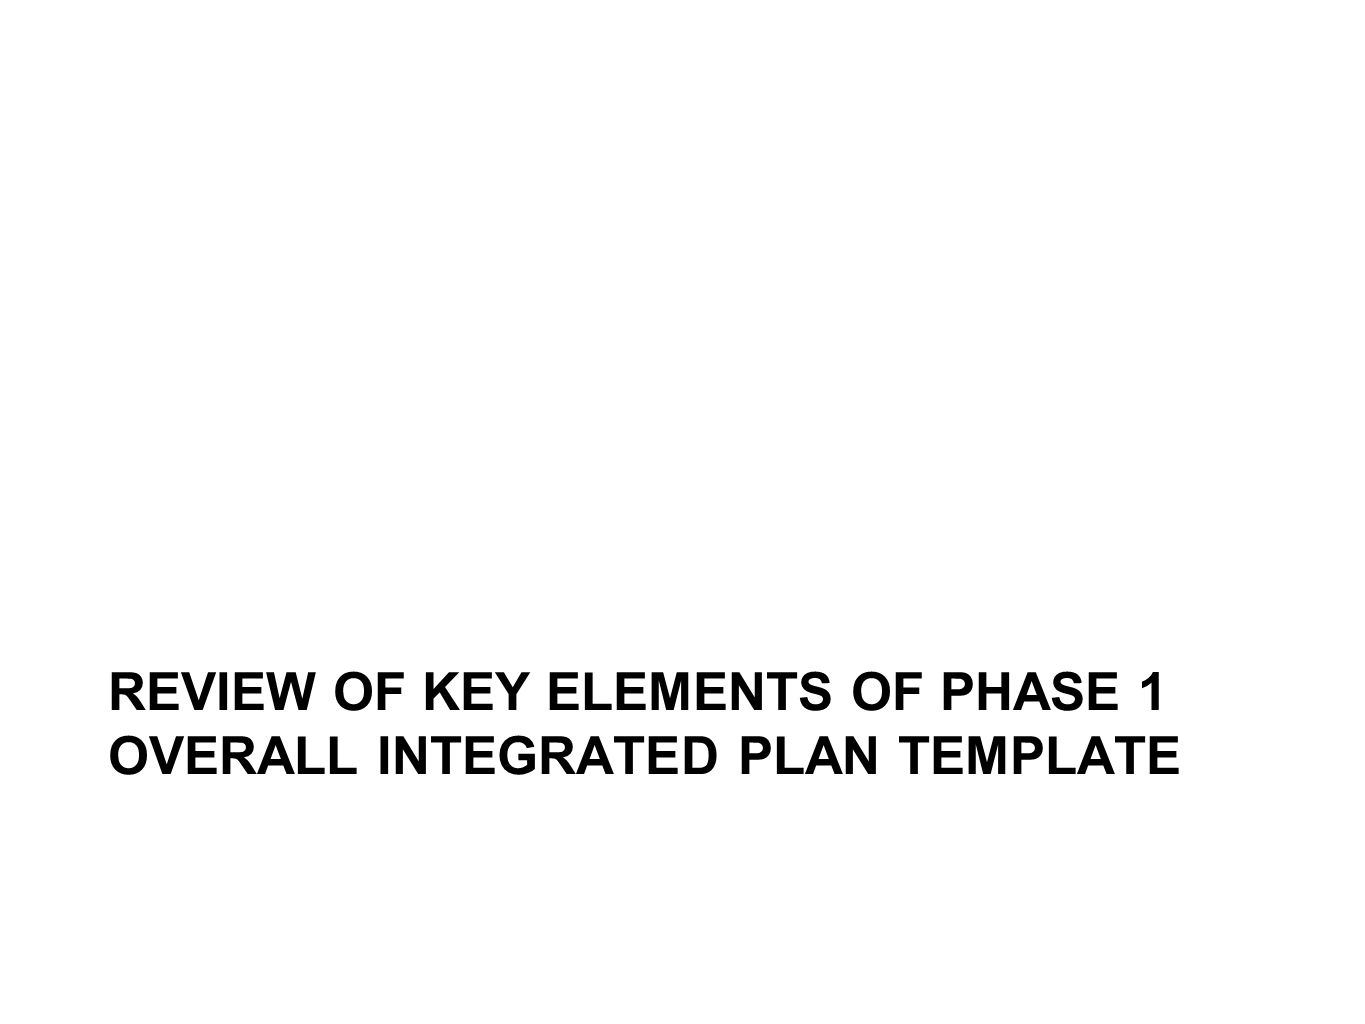 REVIEW OF KEY ELEMENTS OF PHASE 1 OVERALL INTEGRATED PLAN TEMPLATE